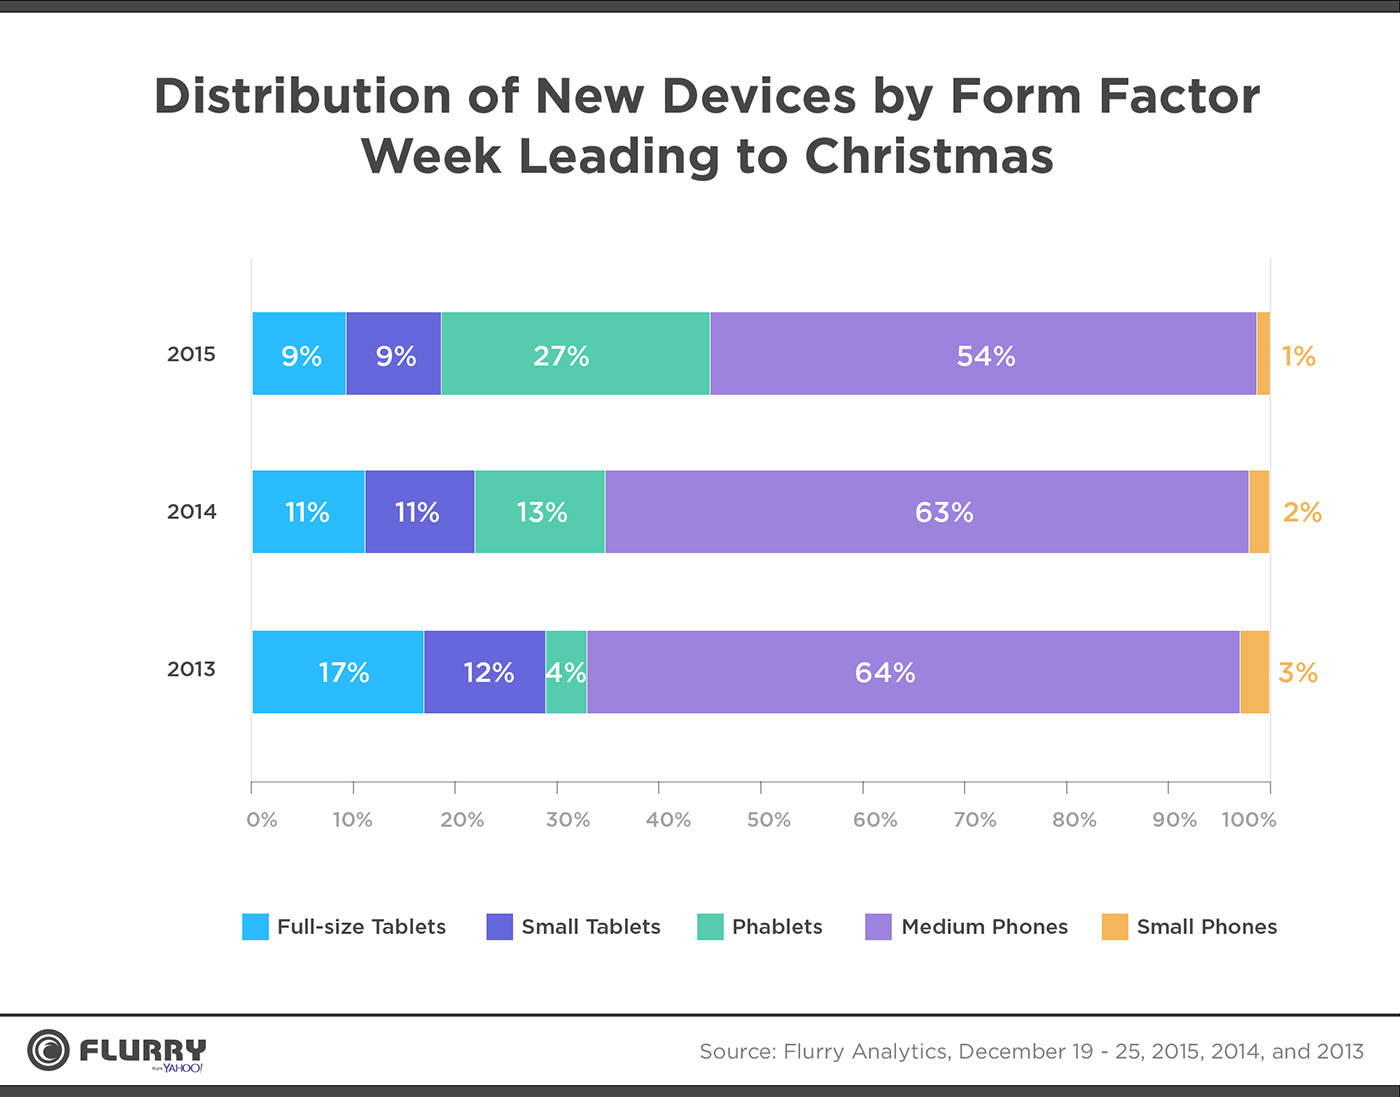 Distribution of New Devices by Form Factor Week Leading to Christmas - Full size tablets, small tablets, phablets, medium phones, small phones